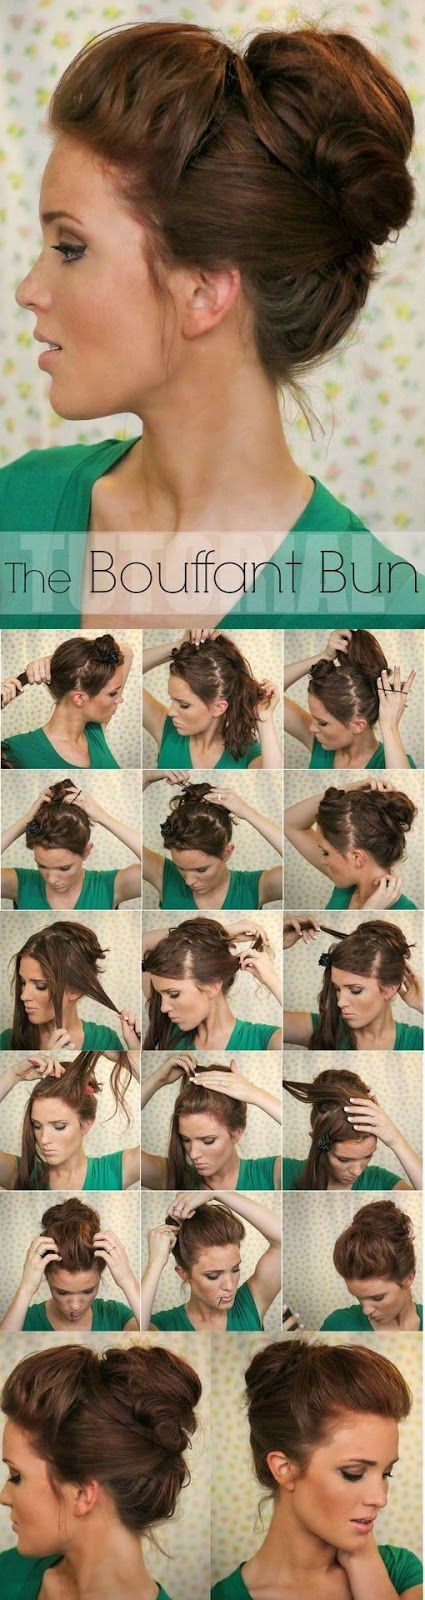 Peachy 1000 Ideas About Easy Hairstyles On Pinterest Hair Hairstyles Short Hairstyles Gunalazisus